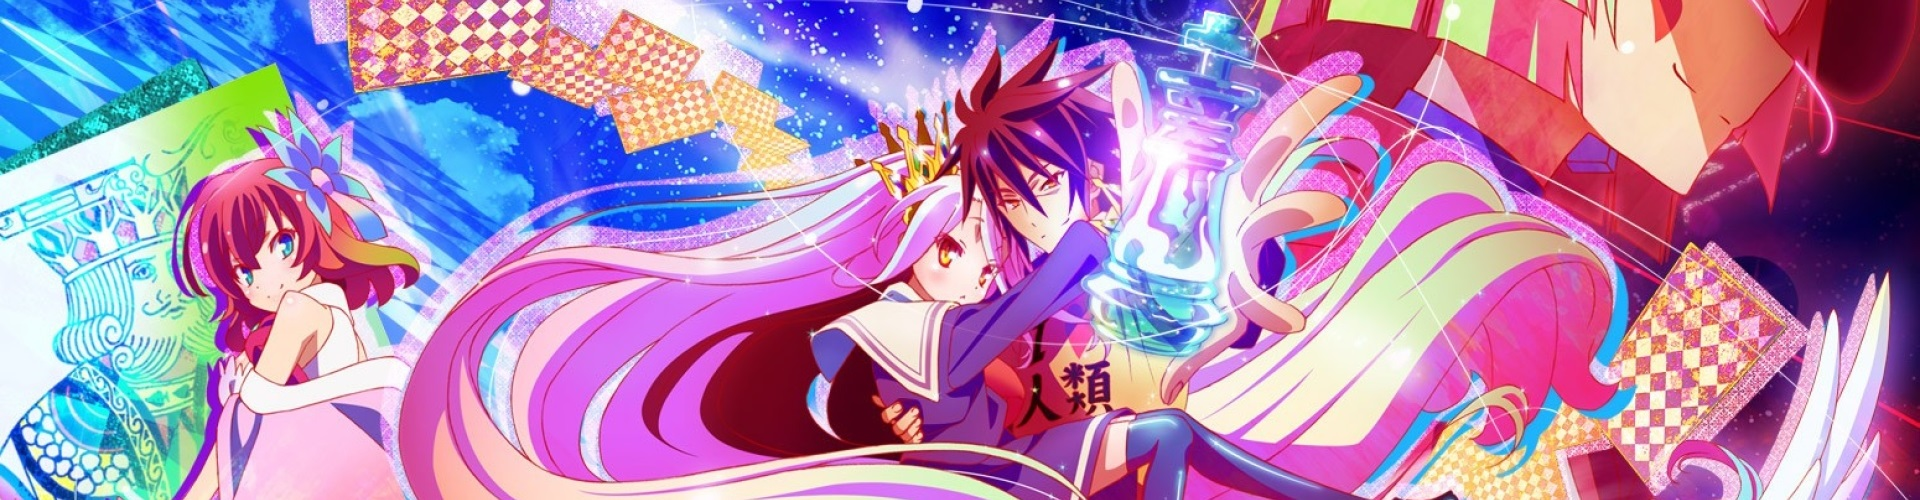 no game no life en latino